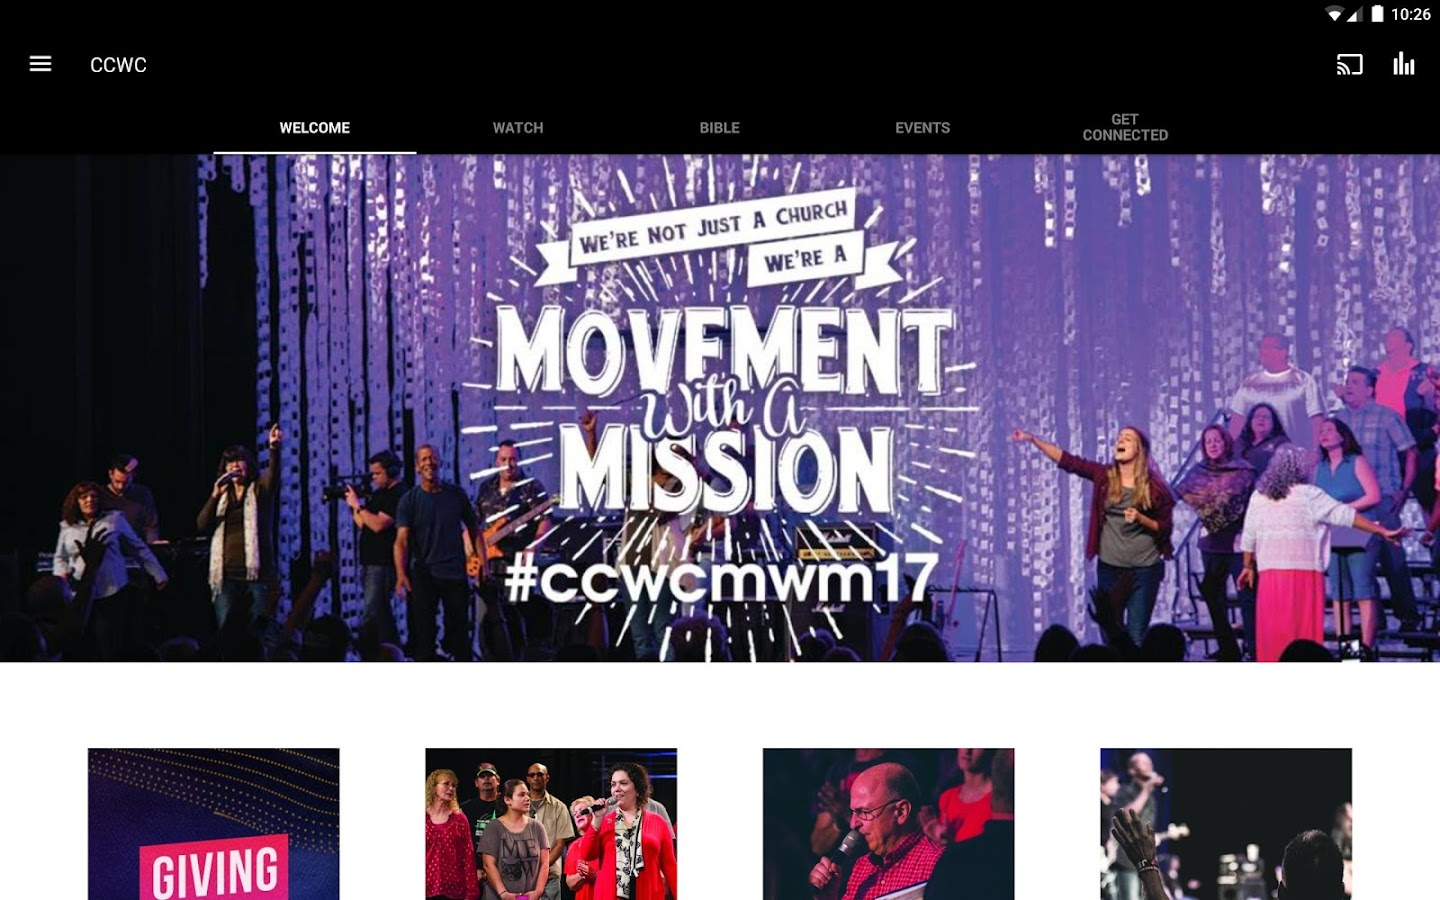 CCWC Church- screenshot